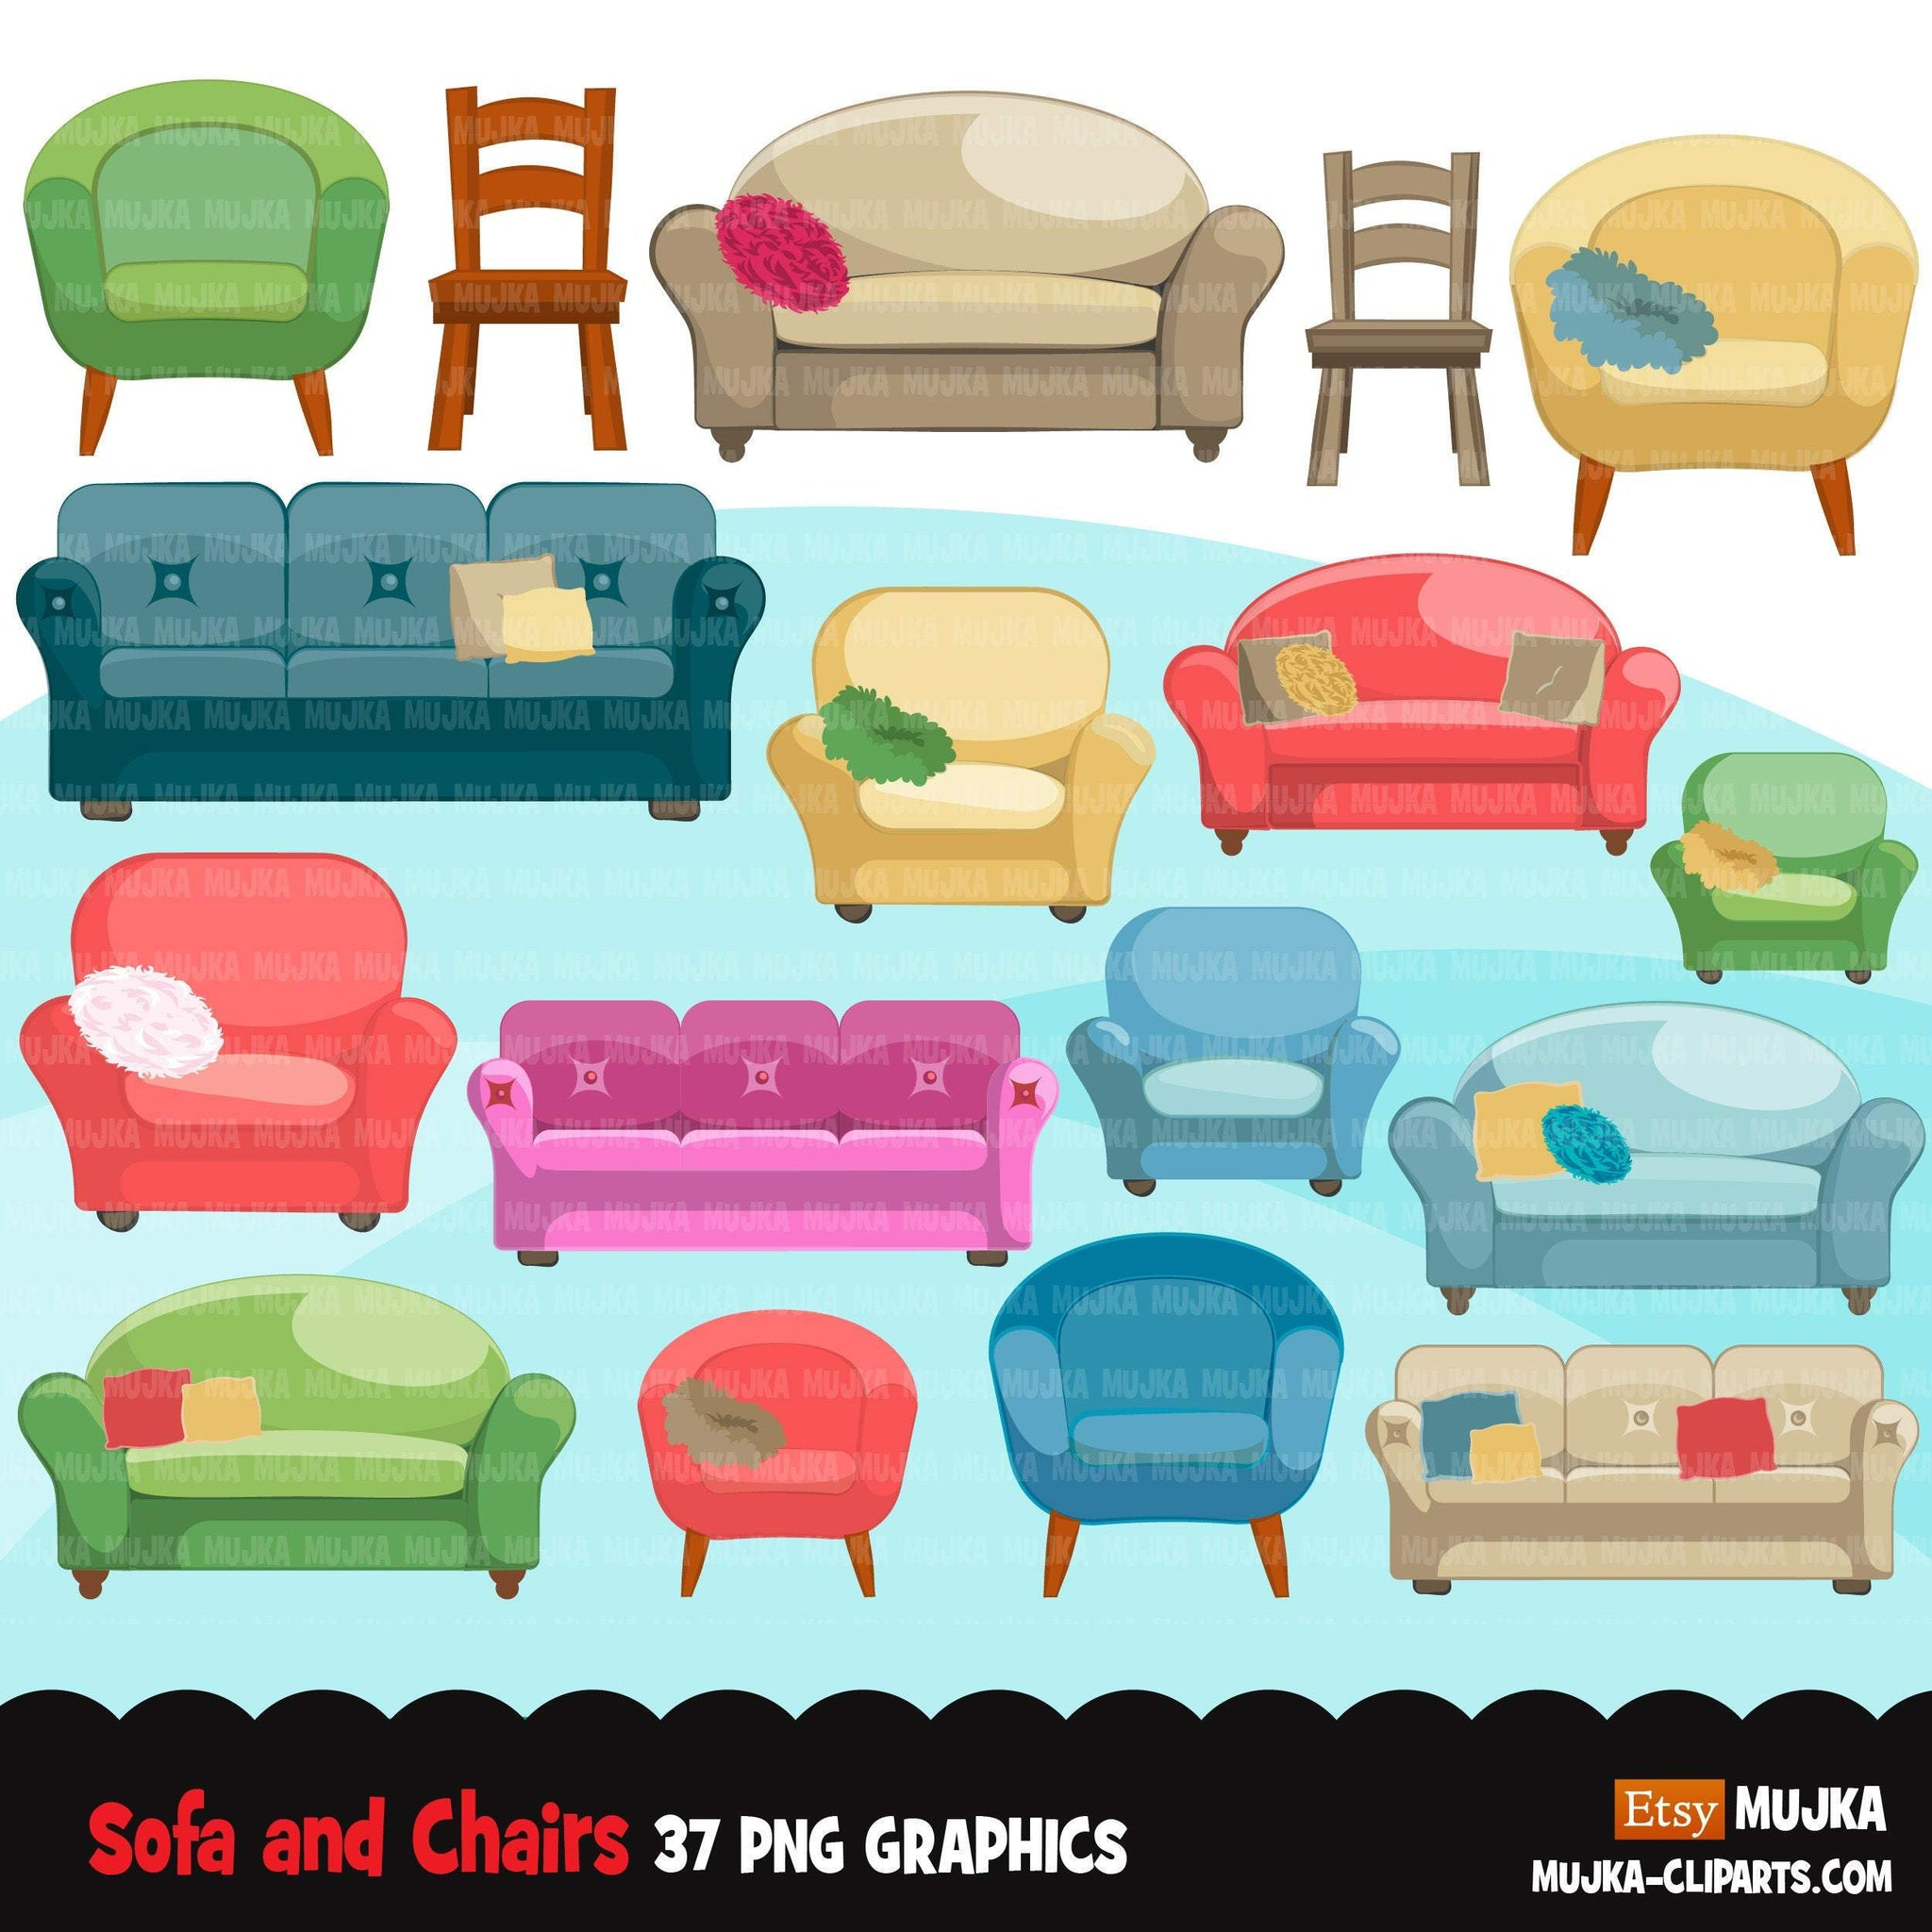 Sofa and armchairs clipart, cute furniture, lounge chair, lazy boy, cushions, pillows, and couches graphics commercial use PNG clip art